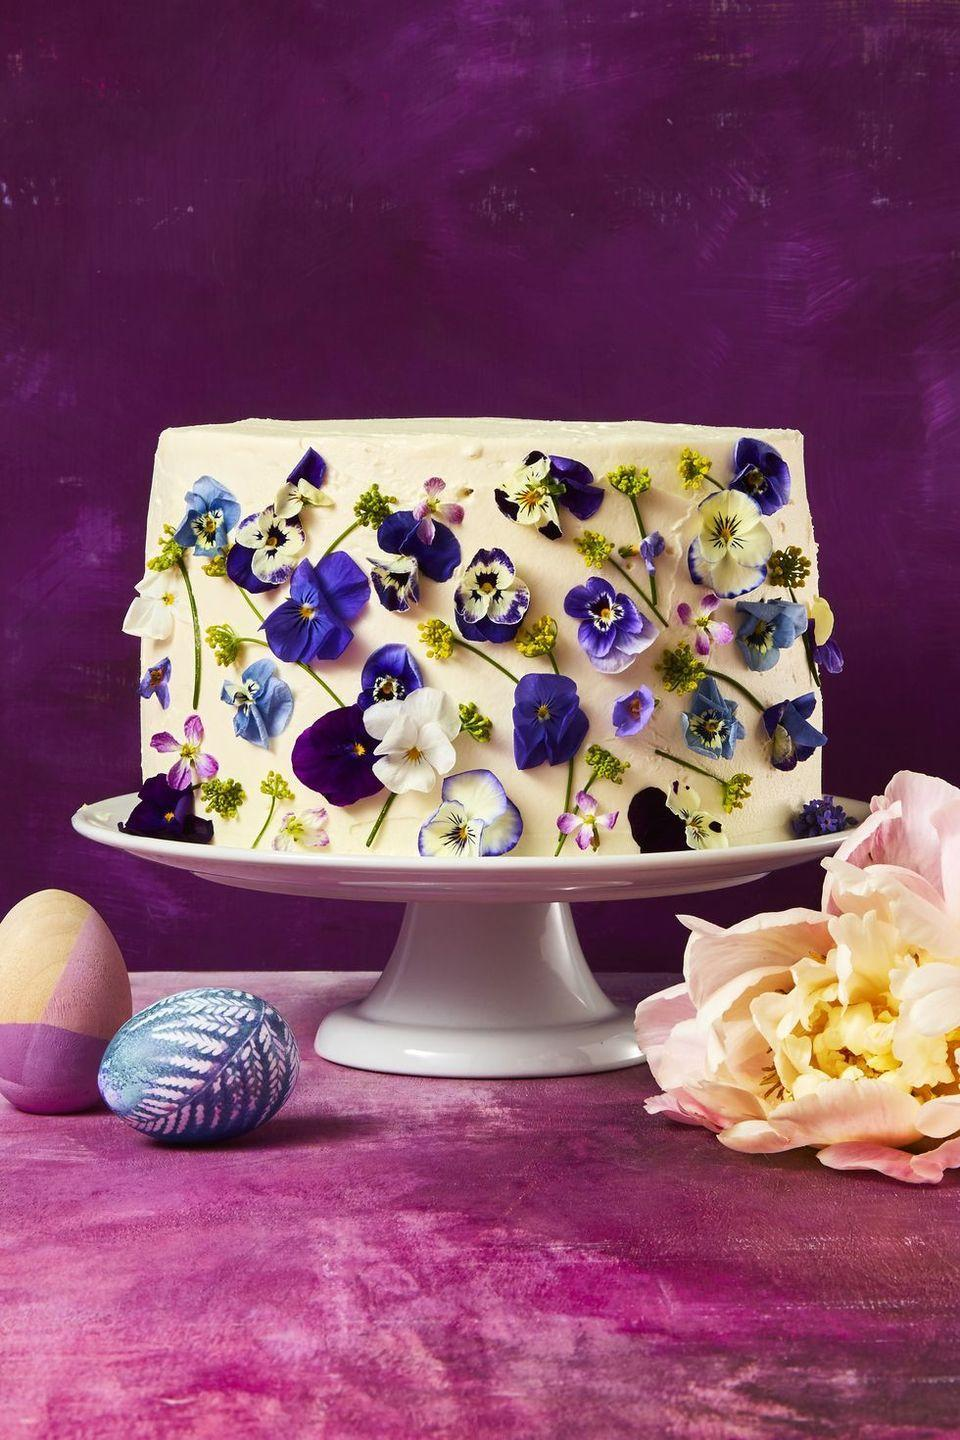 """<p>Dress up a classic cake with beautiful (and edible!) flowers to turn it into the centerpiece of your dessert table.</p><p><em><a href=""""https://www.goodhousekeeping.com/food-recipes/dessert/a48178/vanilla-blossom-cake-recipe/"""" rel=""""nofollow noopener"""" target=""""_blank"""" data-ylk=""""slk:Get the recipe for Vanilla Blossom Cake »"""" class=""""link rapid-noclick-resp"""">Get the recipe for Vanilla Blossom Cake »</a></em></p><p><strong>RELATED:</strong> <a href=""""https://www.goodhousekeeping.com/holidays/easter-ideas/g26557097/easy-easter-desserts/"""" rel=""""nofollow noopener"""" target=""""_blank"""" data-ylk=""""slk:50+ Easy Easter Desserts That Celebrate the Holiday In a Big Way"""" class=""""link rapid-noclick-resp"""">50+ Easy Easter Desserts That Celebrate the Holiday In a Big Way</a></p>"""